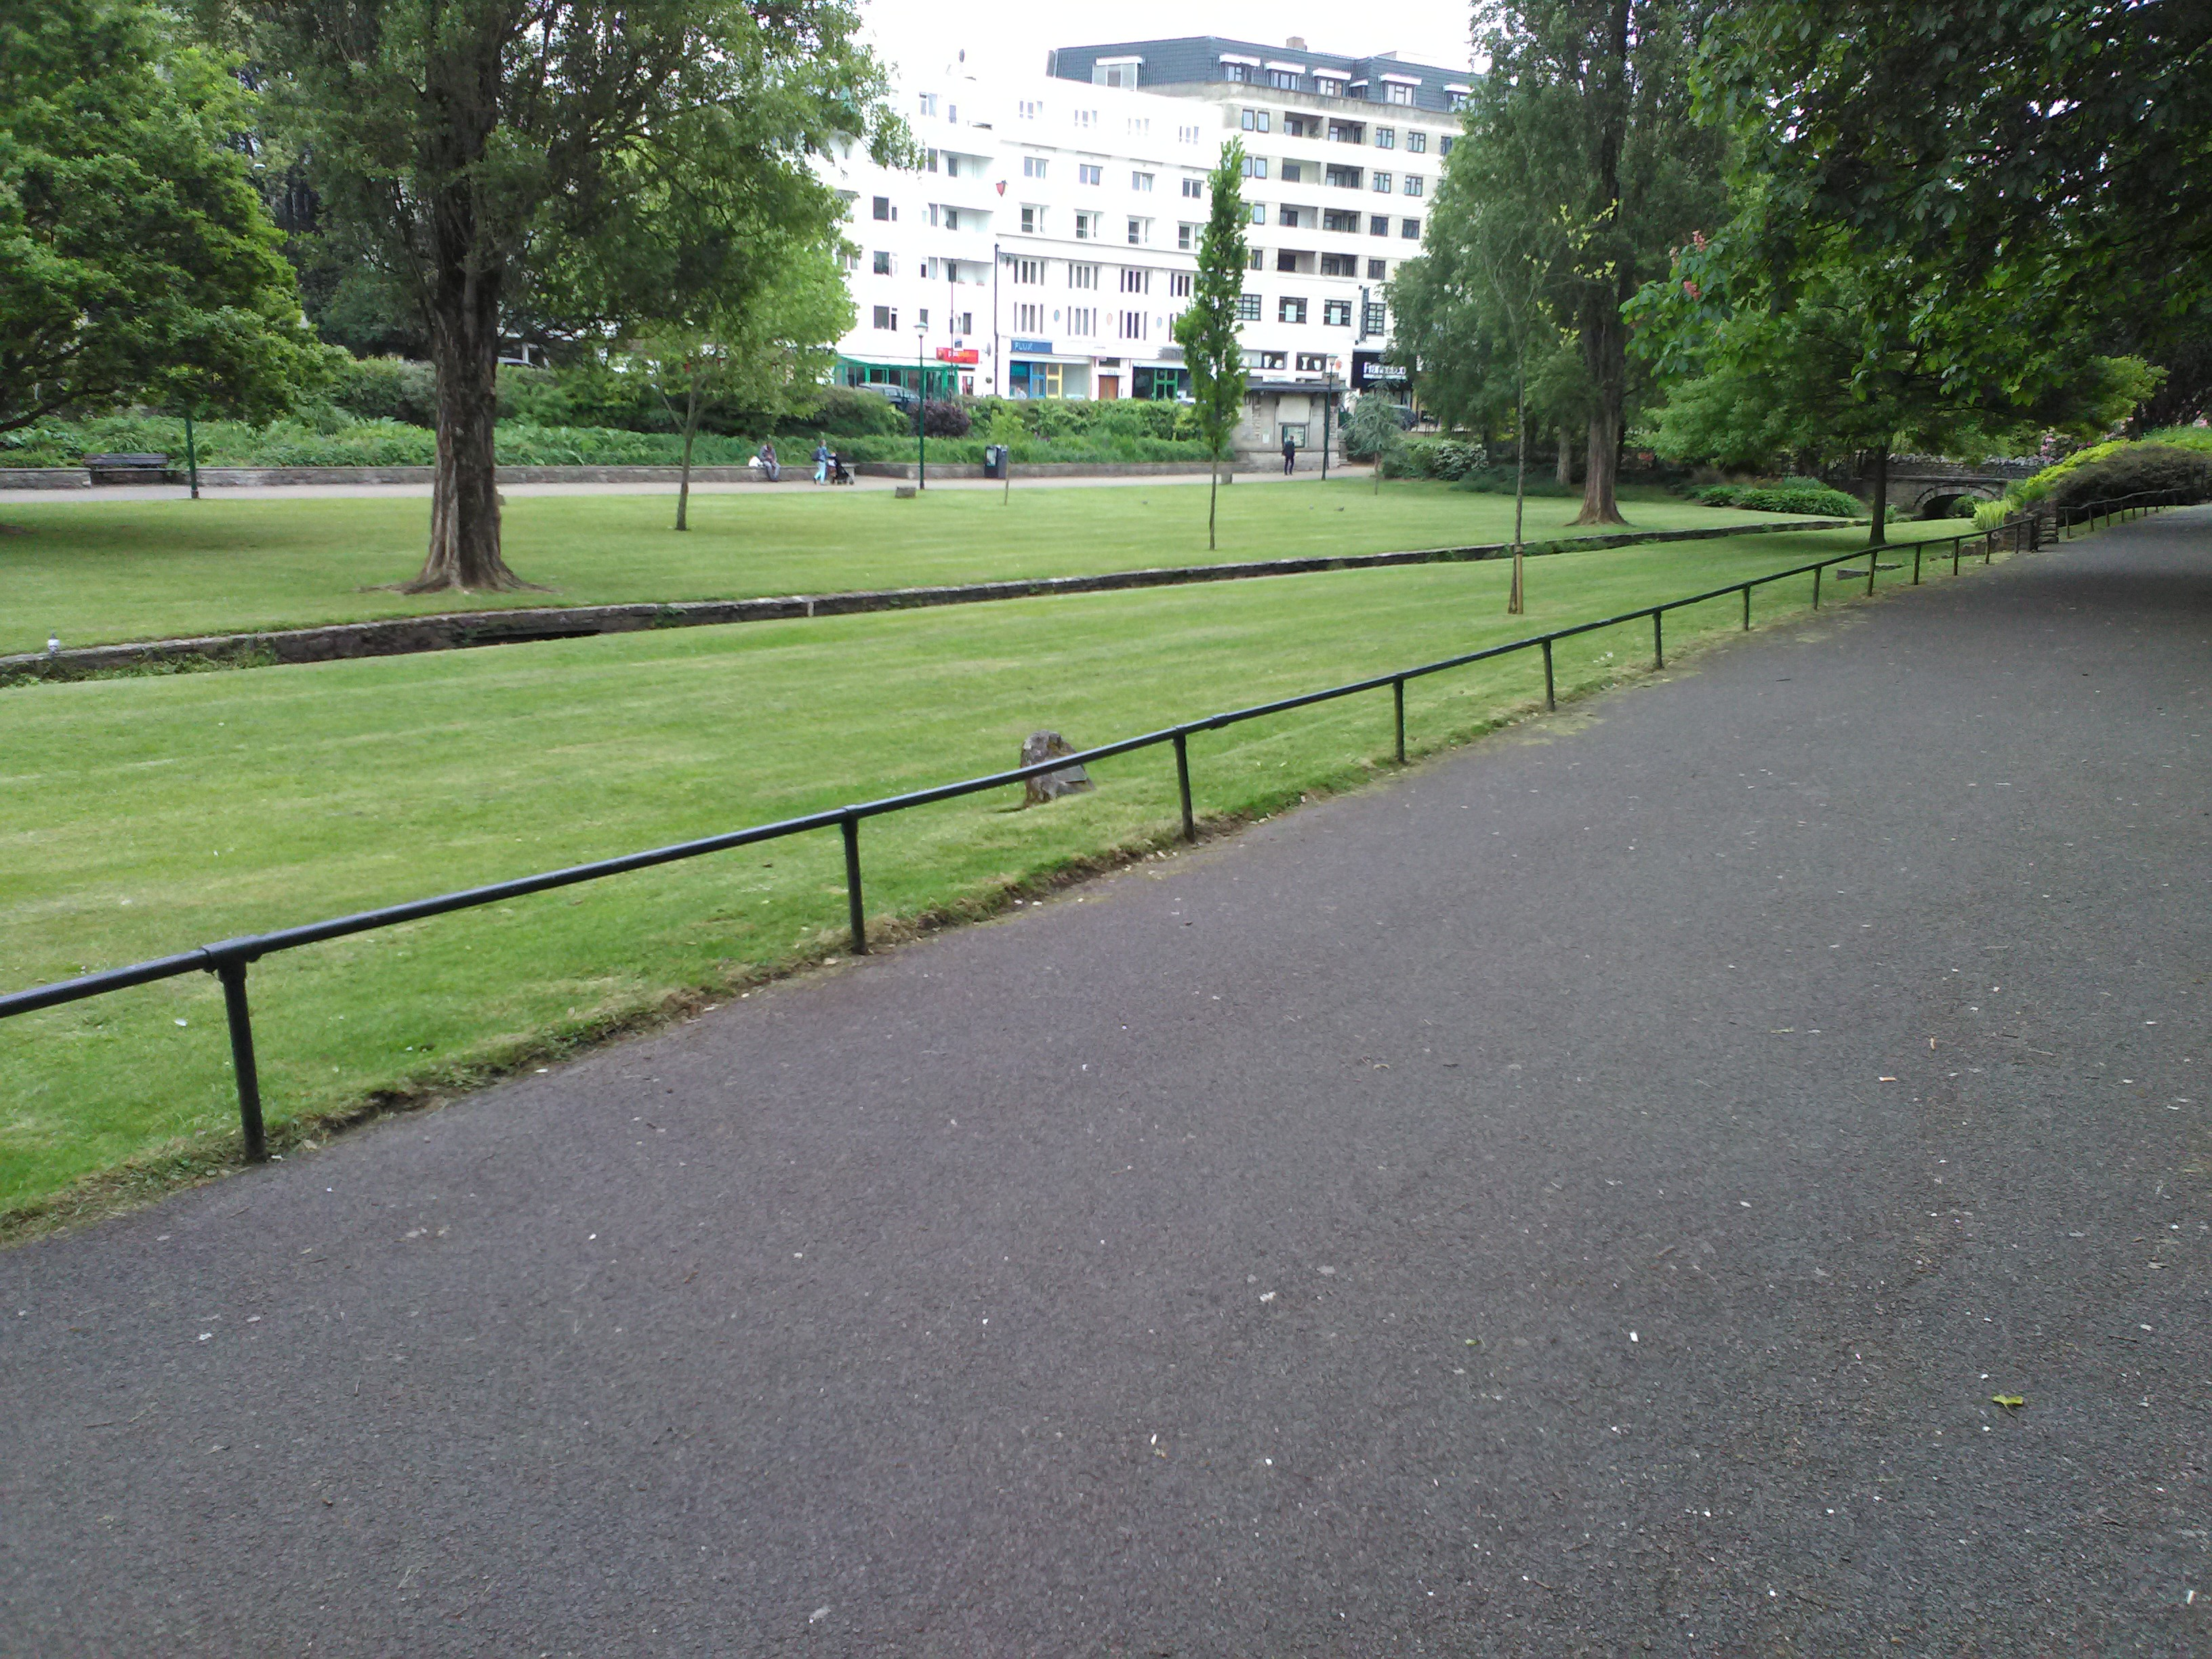 View from the bench